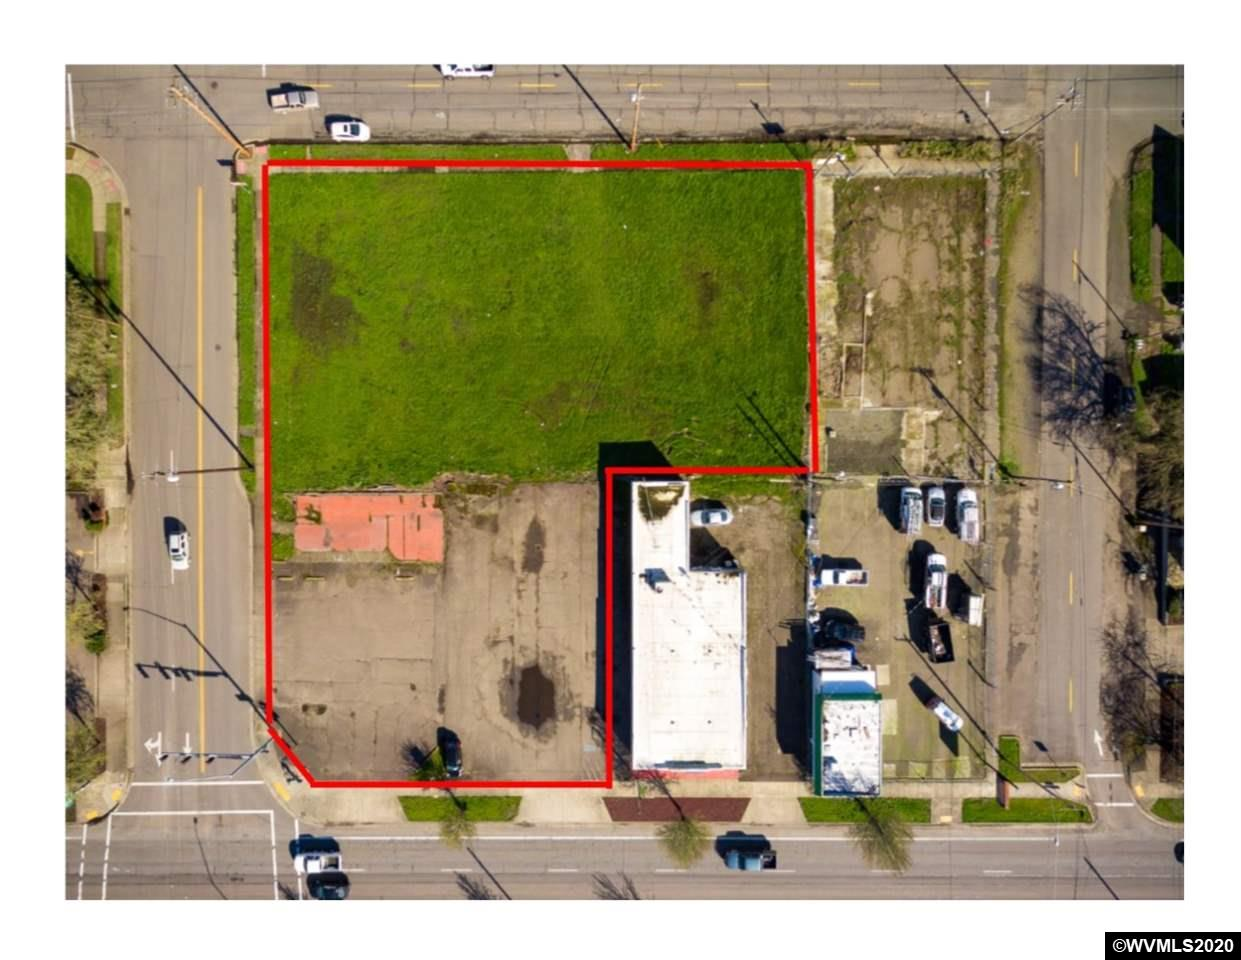 Set on a 4-way stoplight corner on one of the busiest intersections in Albany, this .85 acre parcel is shovel ready. You'll have extremely high visibility with this street to street parcel for incoming traffic to downtown, North Albany, Corvallis, OSU, LBCC and Eugene. Zoned commercial for medical, retail, office, banking, restaurant, fast food, etc. with clean Phase I & II Environmental Reports. Access off of Pacific or 7th per your business needs. Near Starbucks, Dutch Bros, Lowes, Chevron, Papa Murphy's